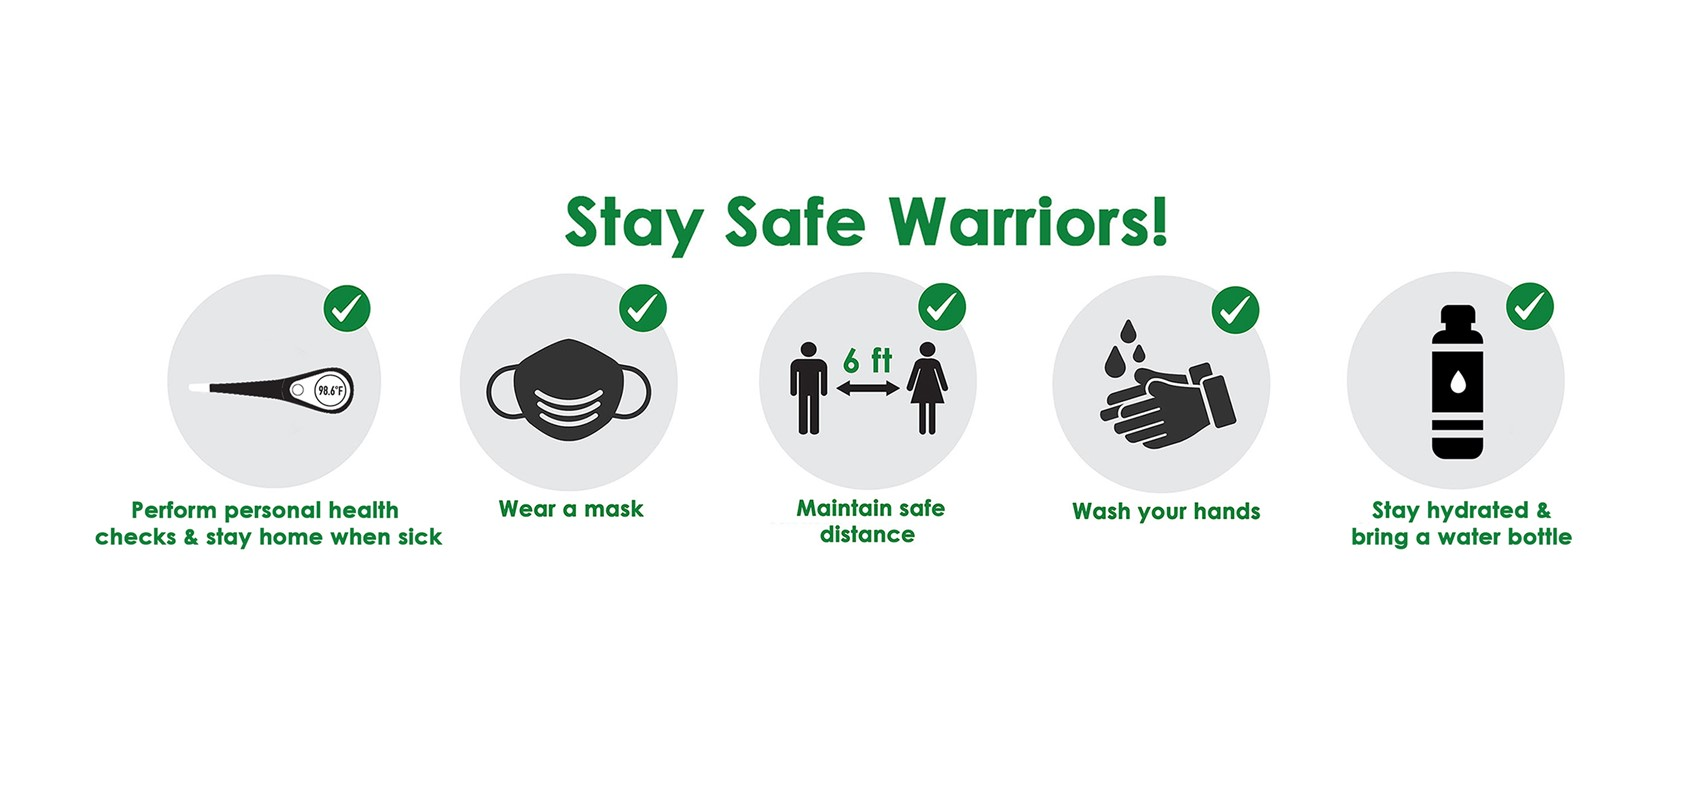 stay home when sick, wear a mask, 6 ft apart, wash hands, stay hydrated